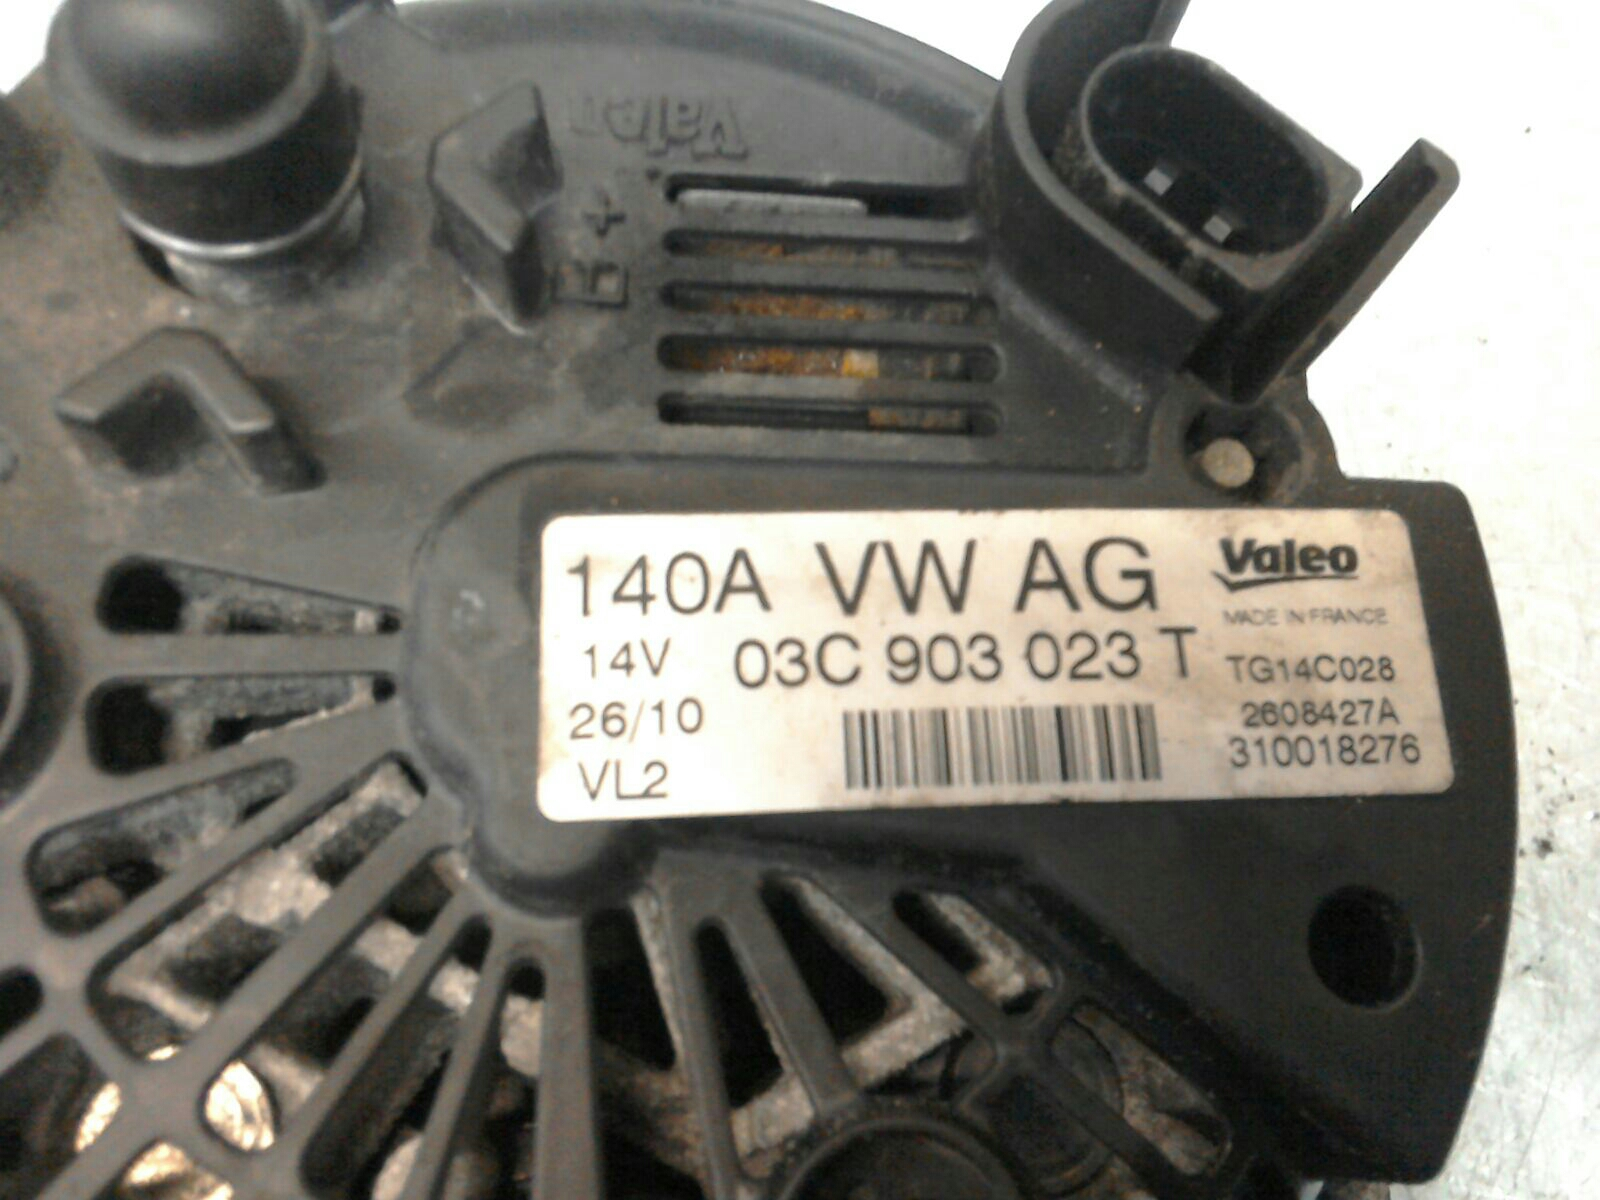 audi a3 2008 to 2013 alternator petrol manual for sale from scb rh scbvehicledismantlers co uk Audi A3 Owner Manual Audi A3 TDI